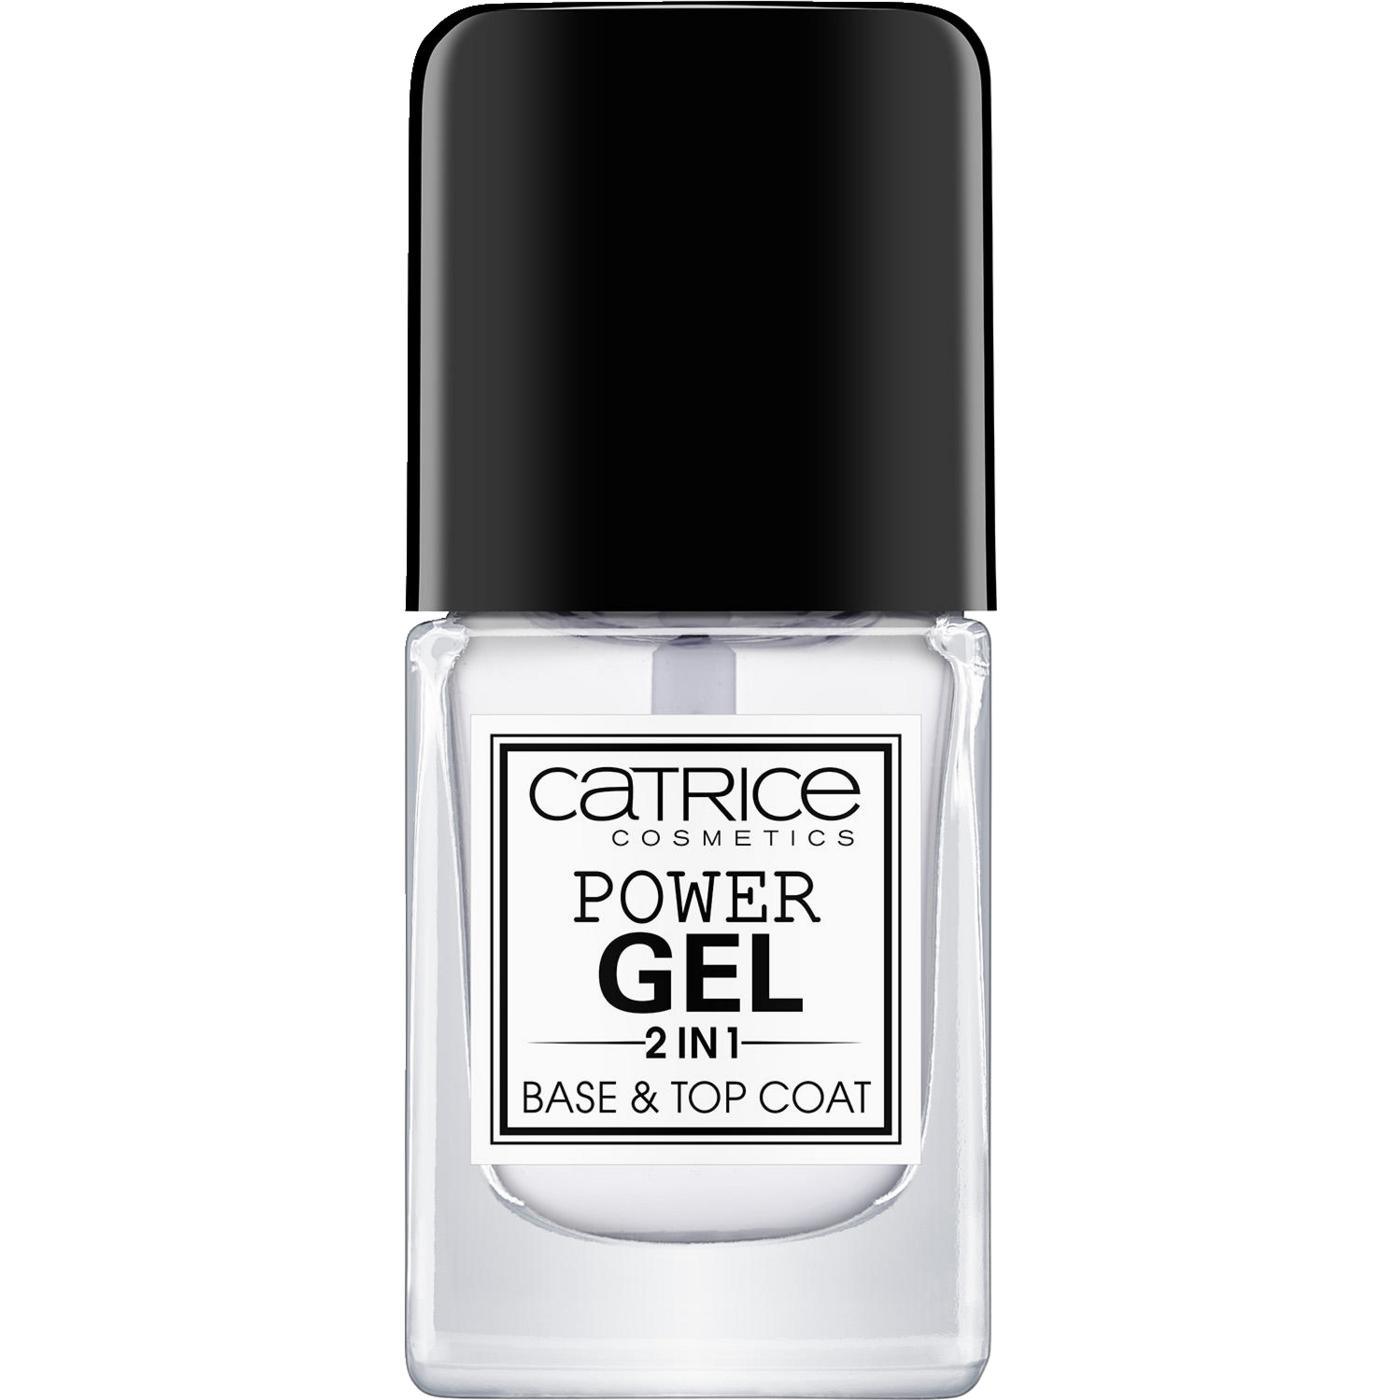 Catrice Power Gel 2in1 Base & Top Coat